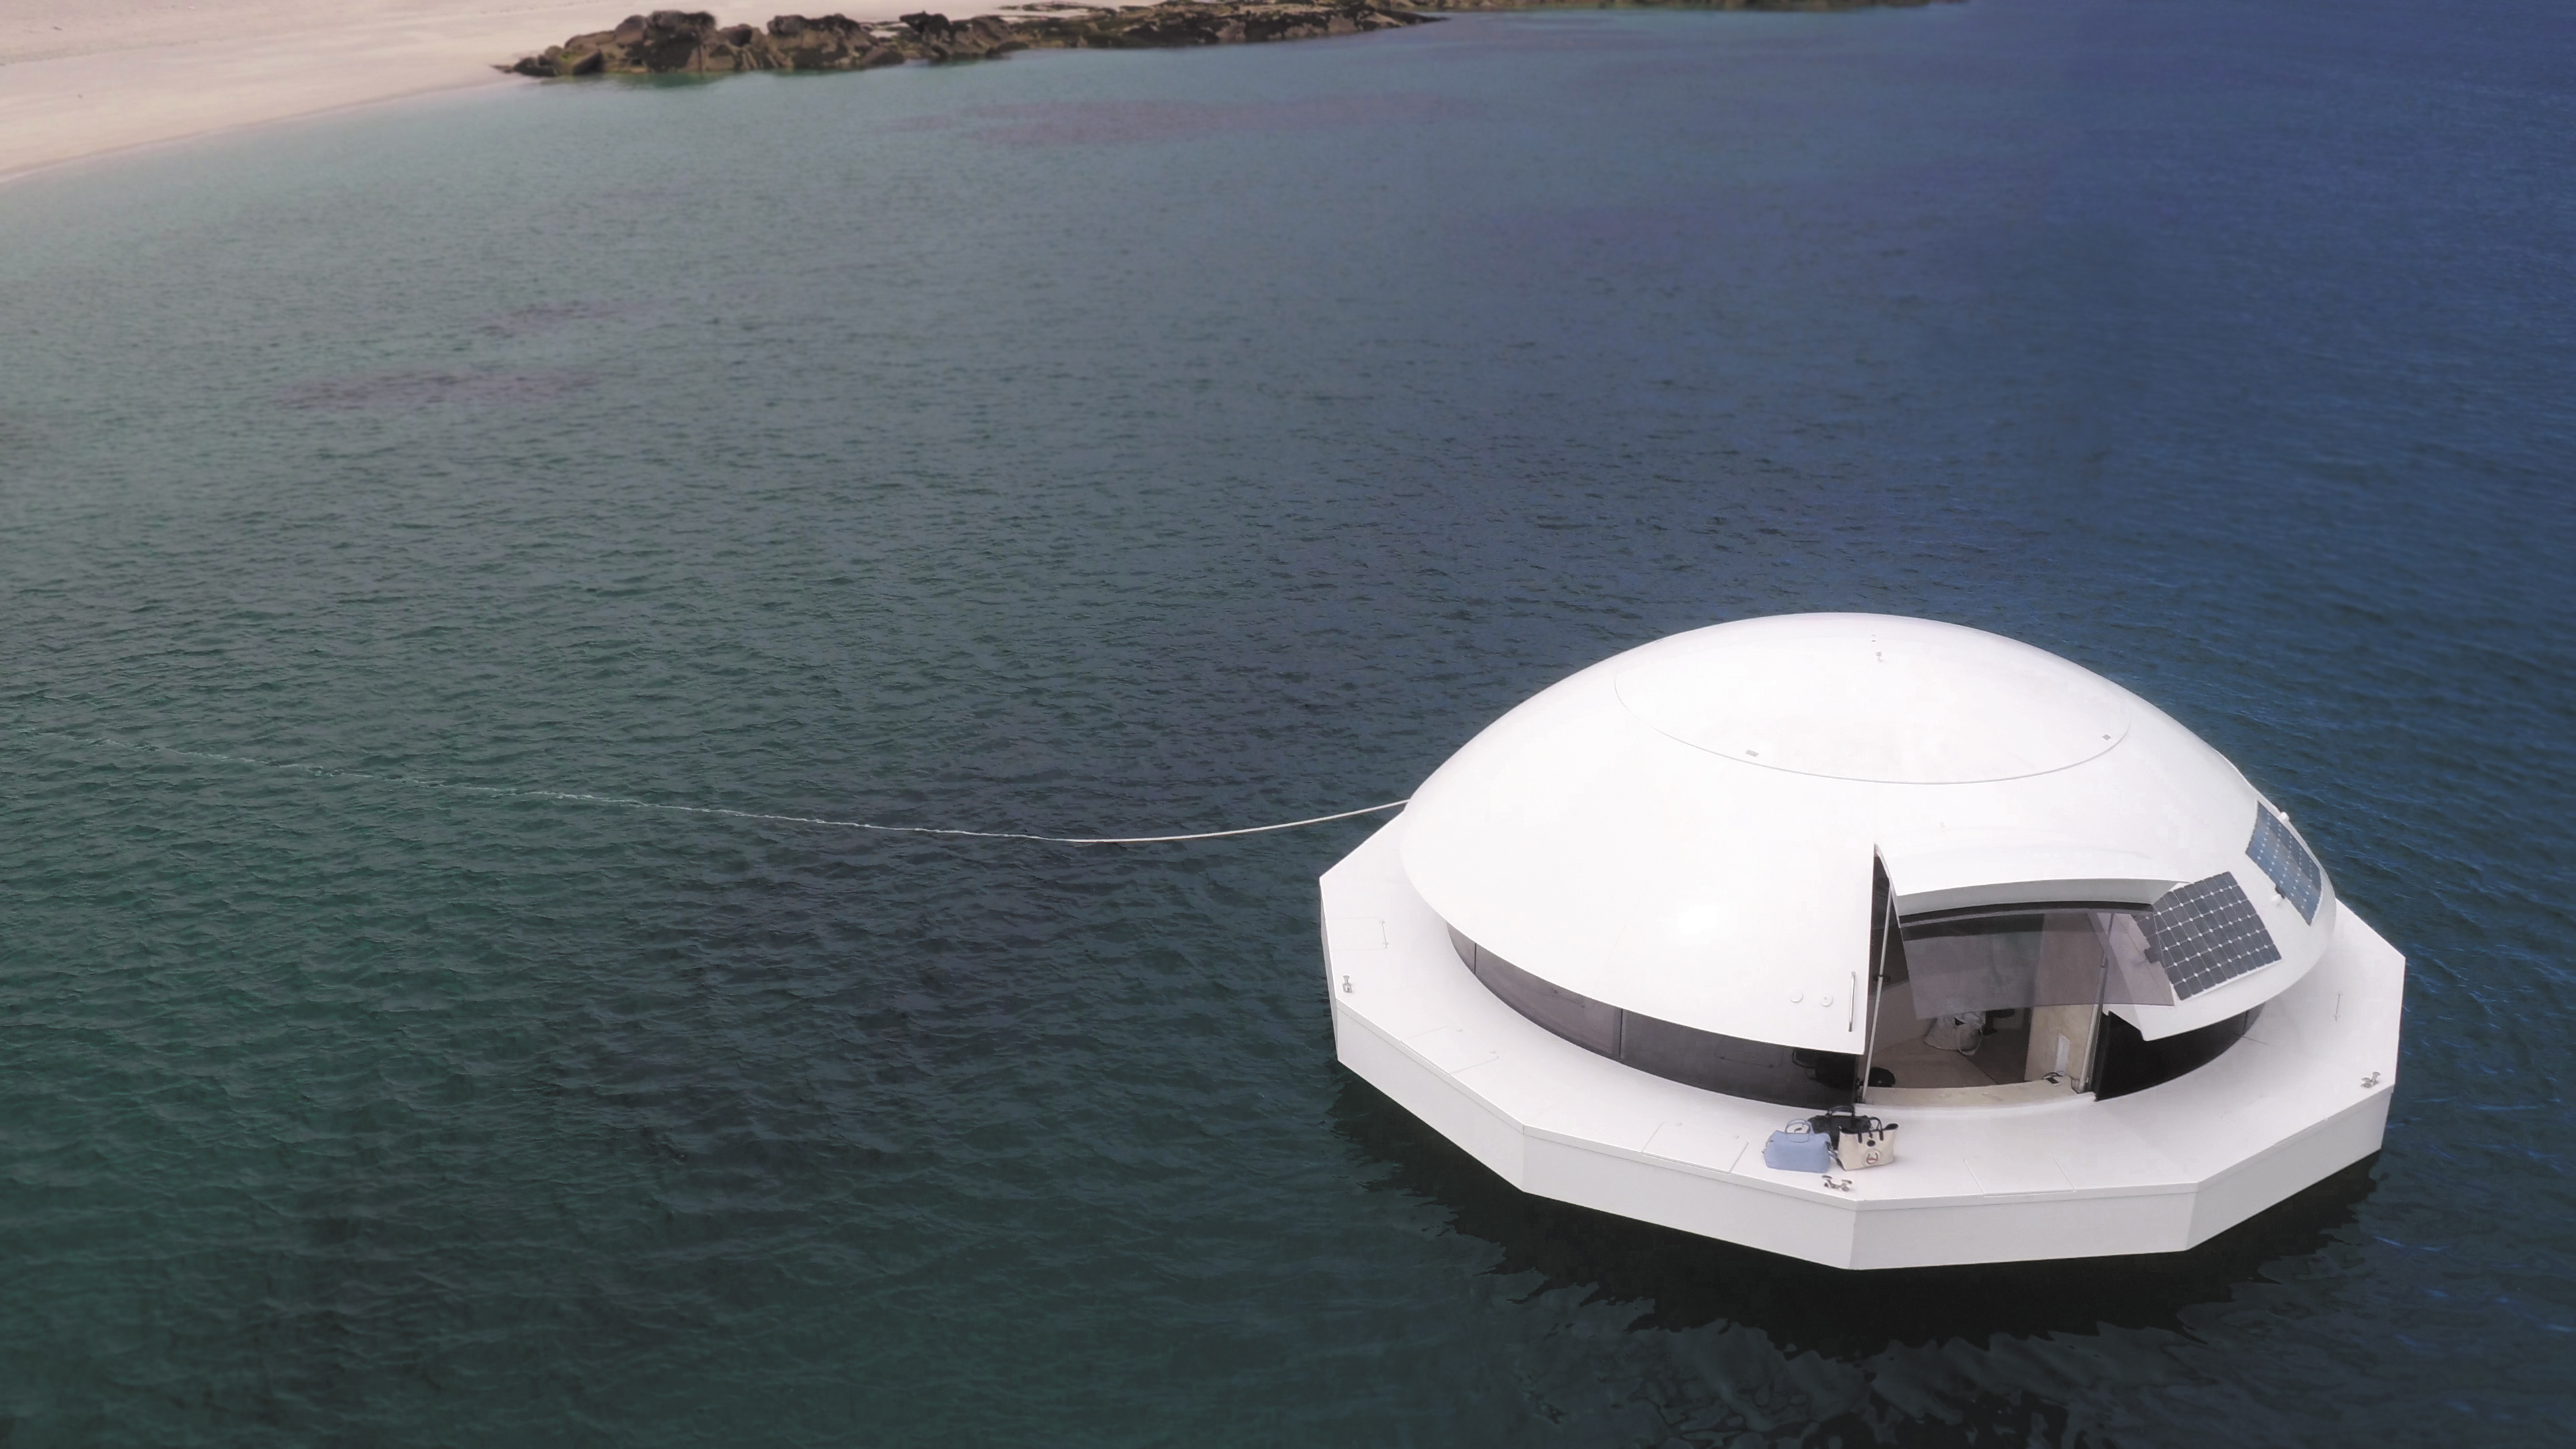 Solar-powered 'floating hotel suite' starts at $535K